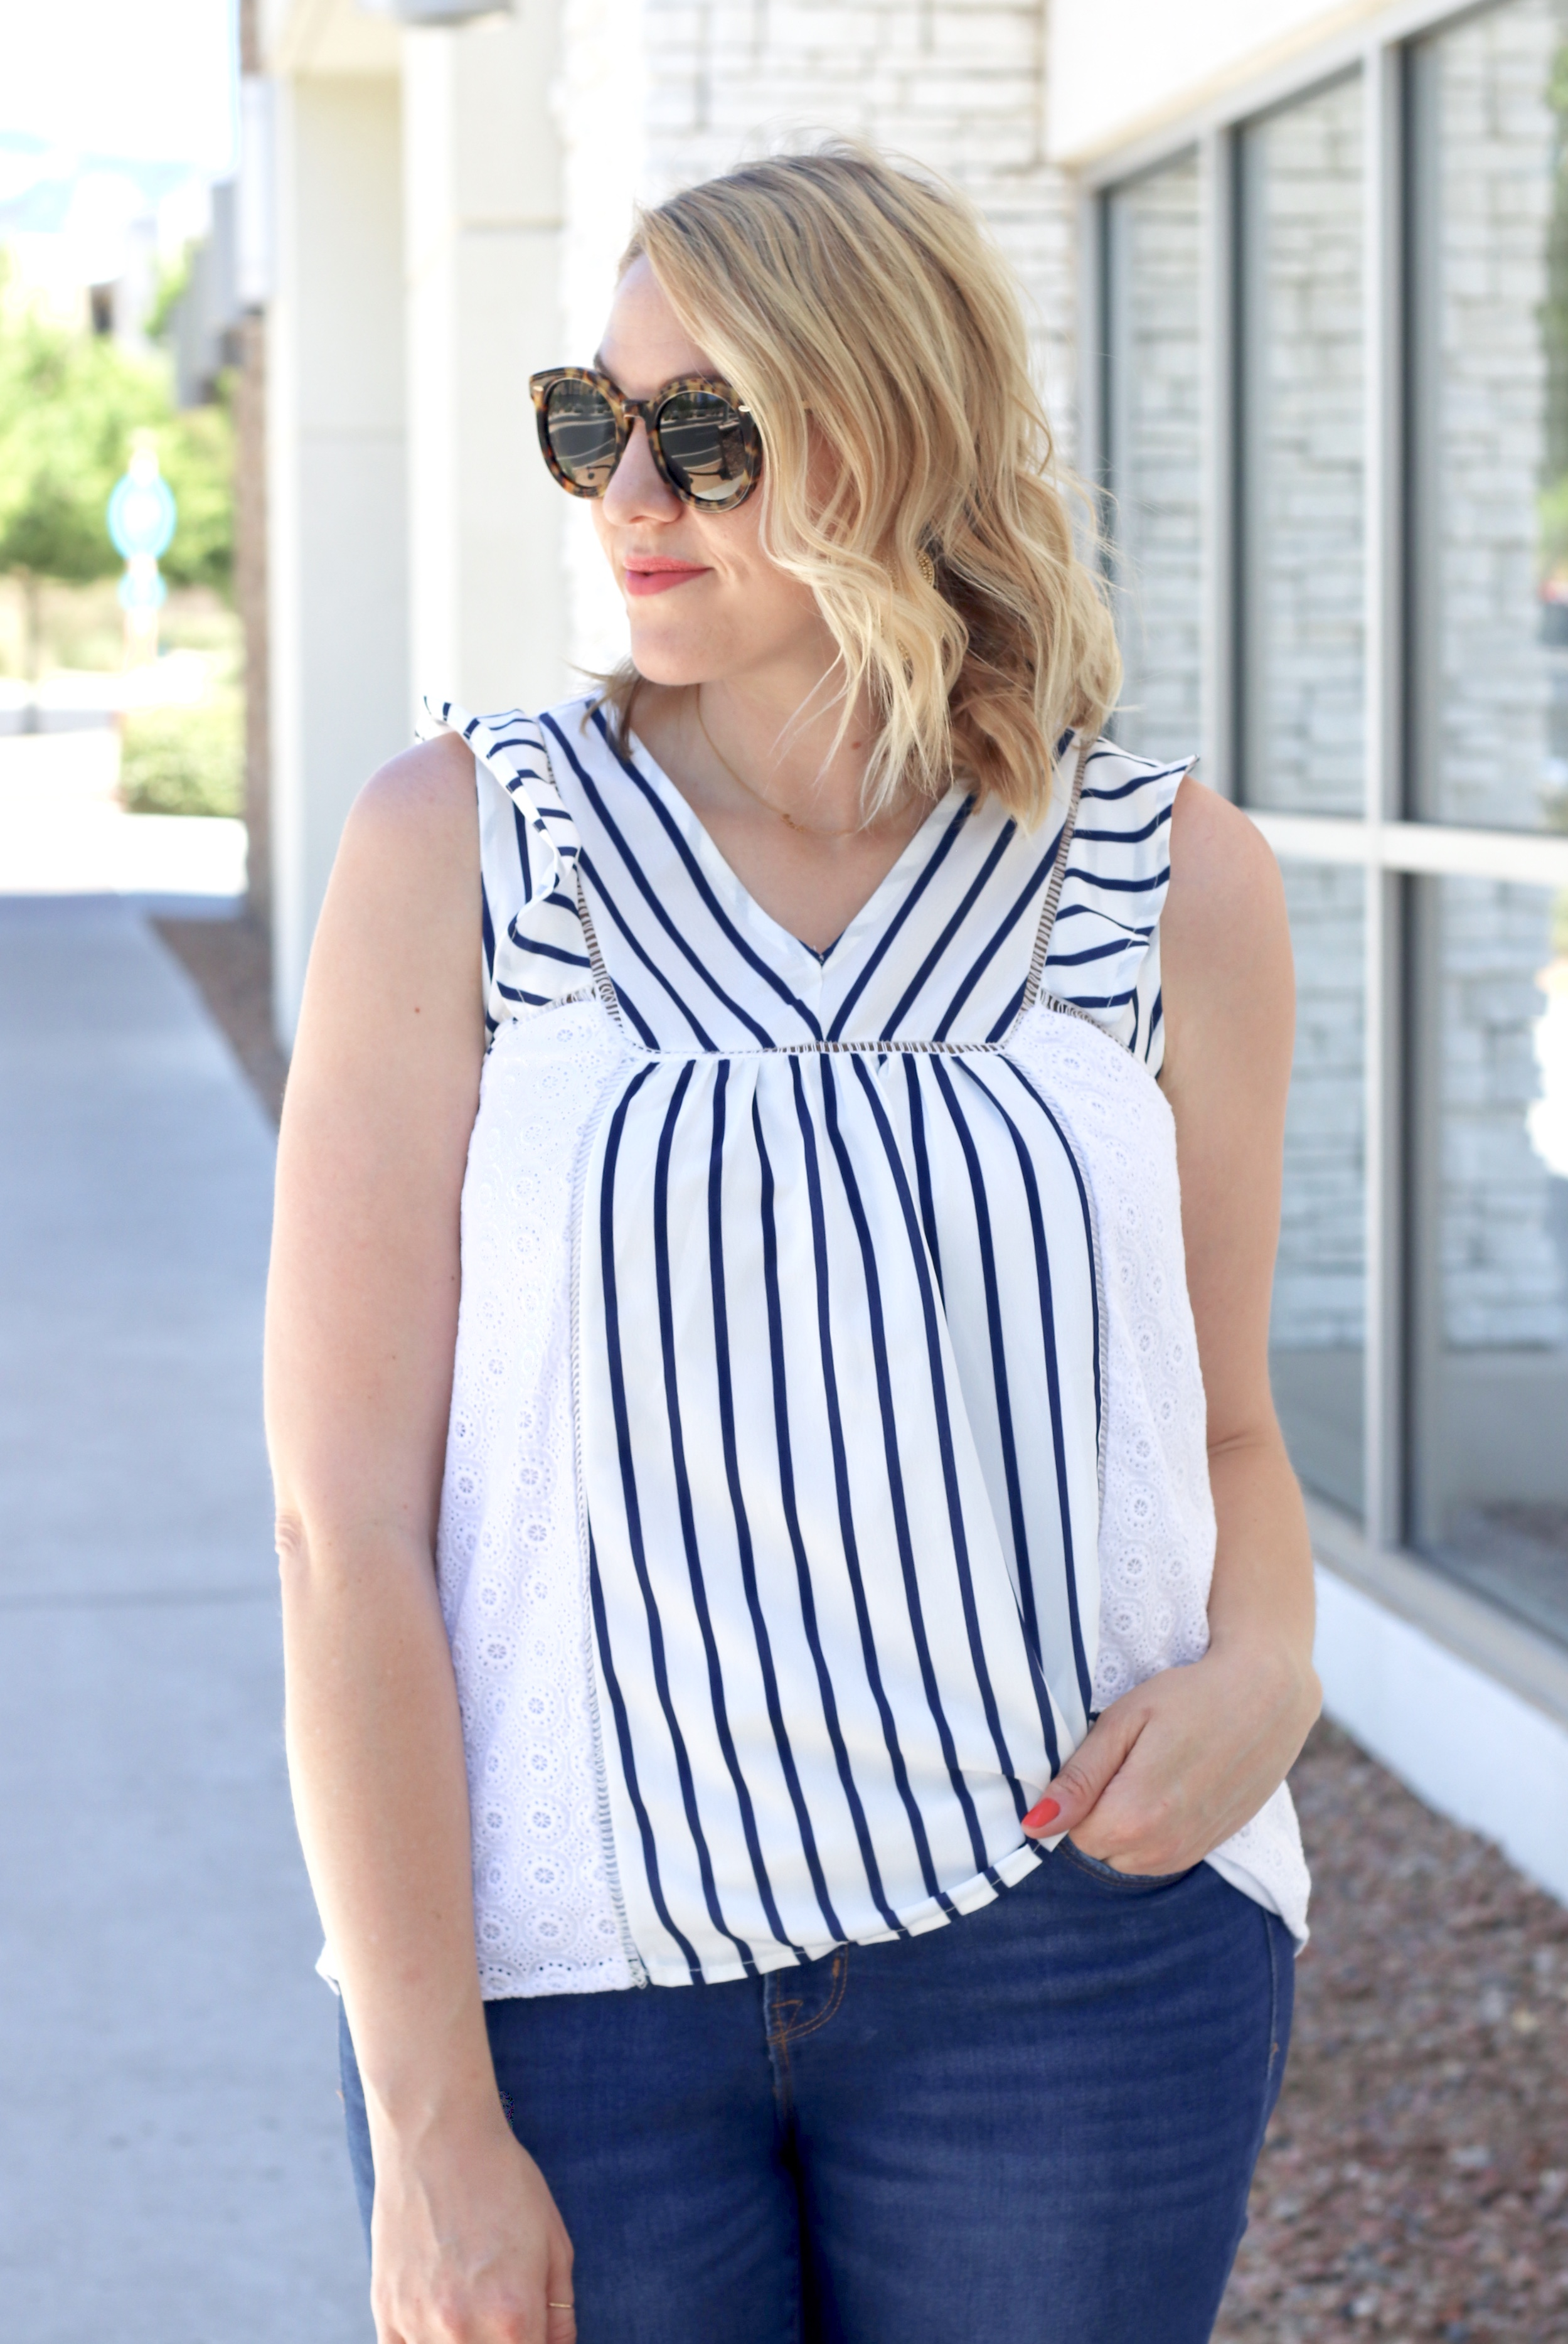 eyelet blouse with striped miss match san diego #missmatchsd #eyeletblouse #eyelet #stripedtop